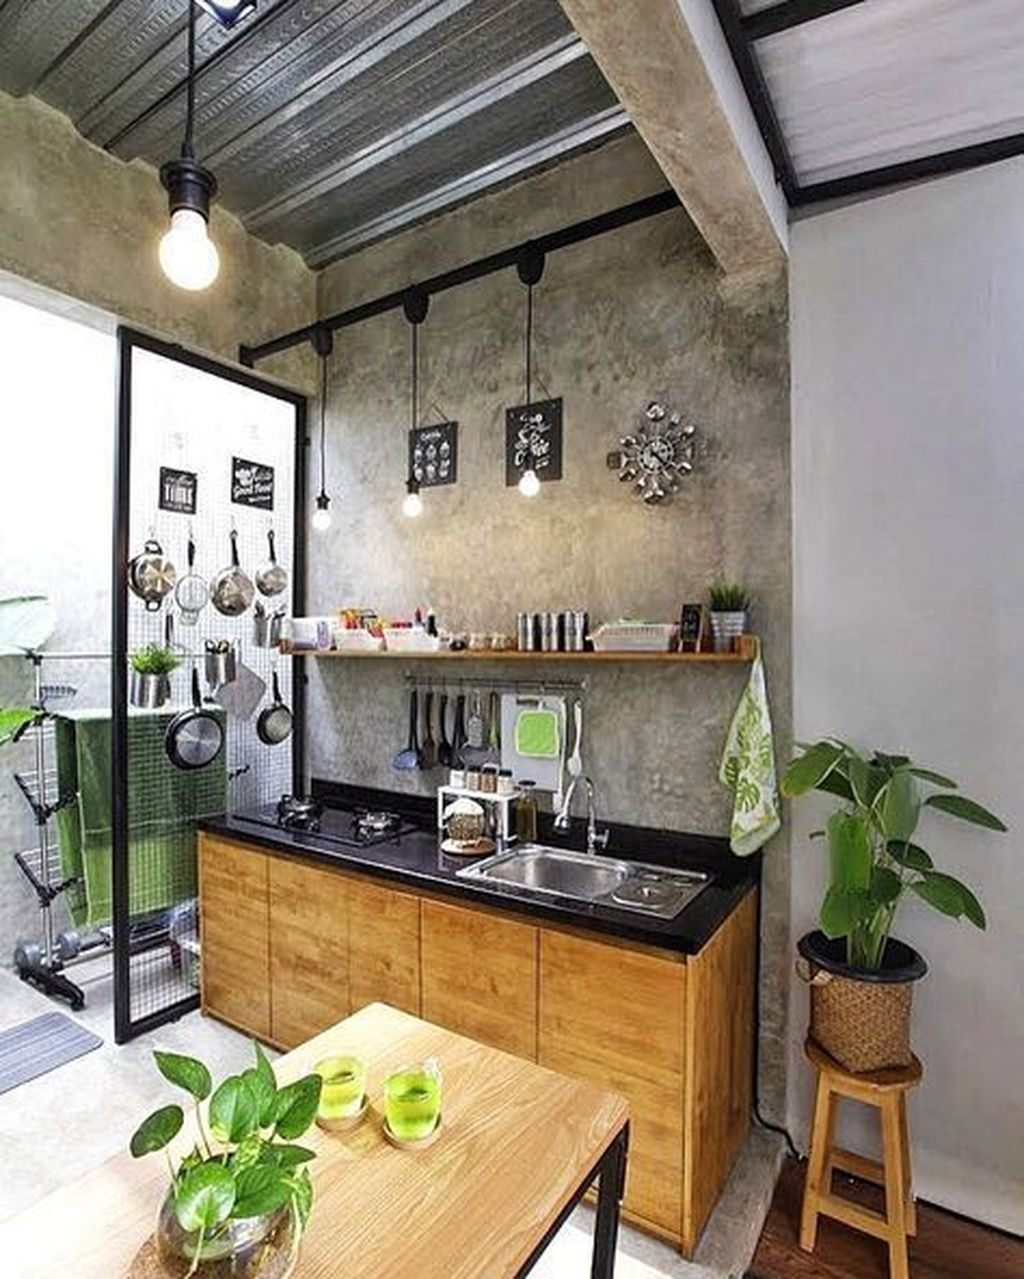 Simple Kitchen Remodeling Ideas On A Budget04